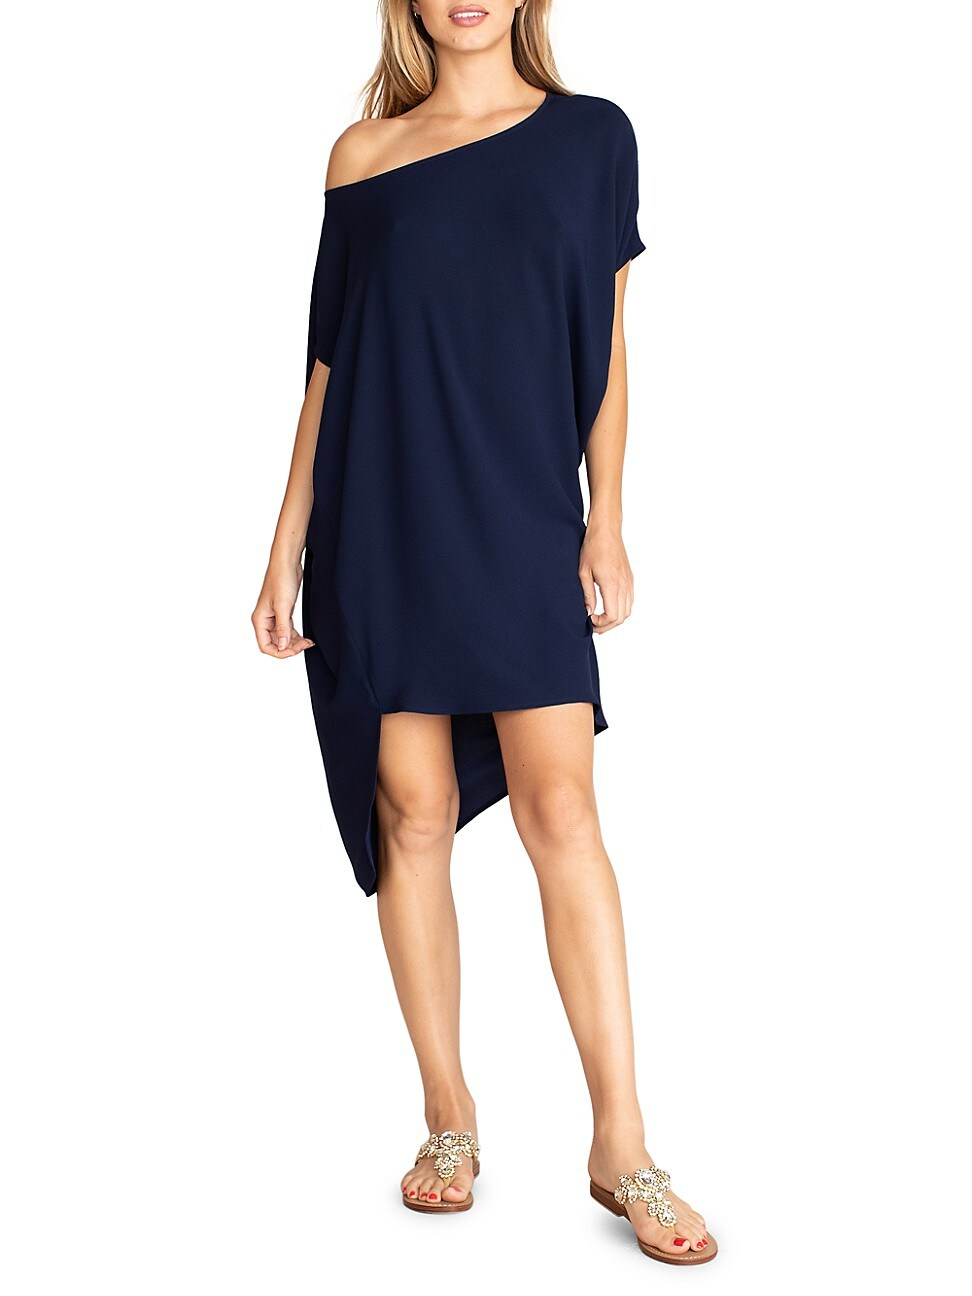 Trina Turk WOMEN'S RADIANT ASYMMETRIC DRESS